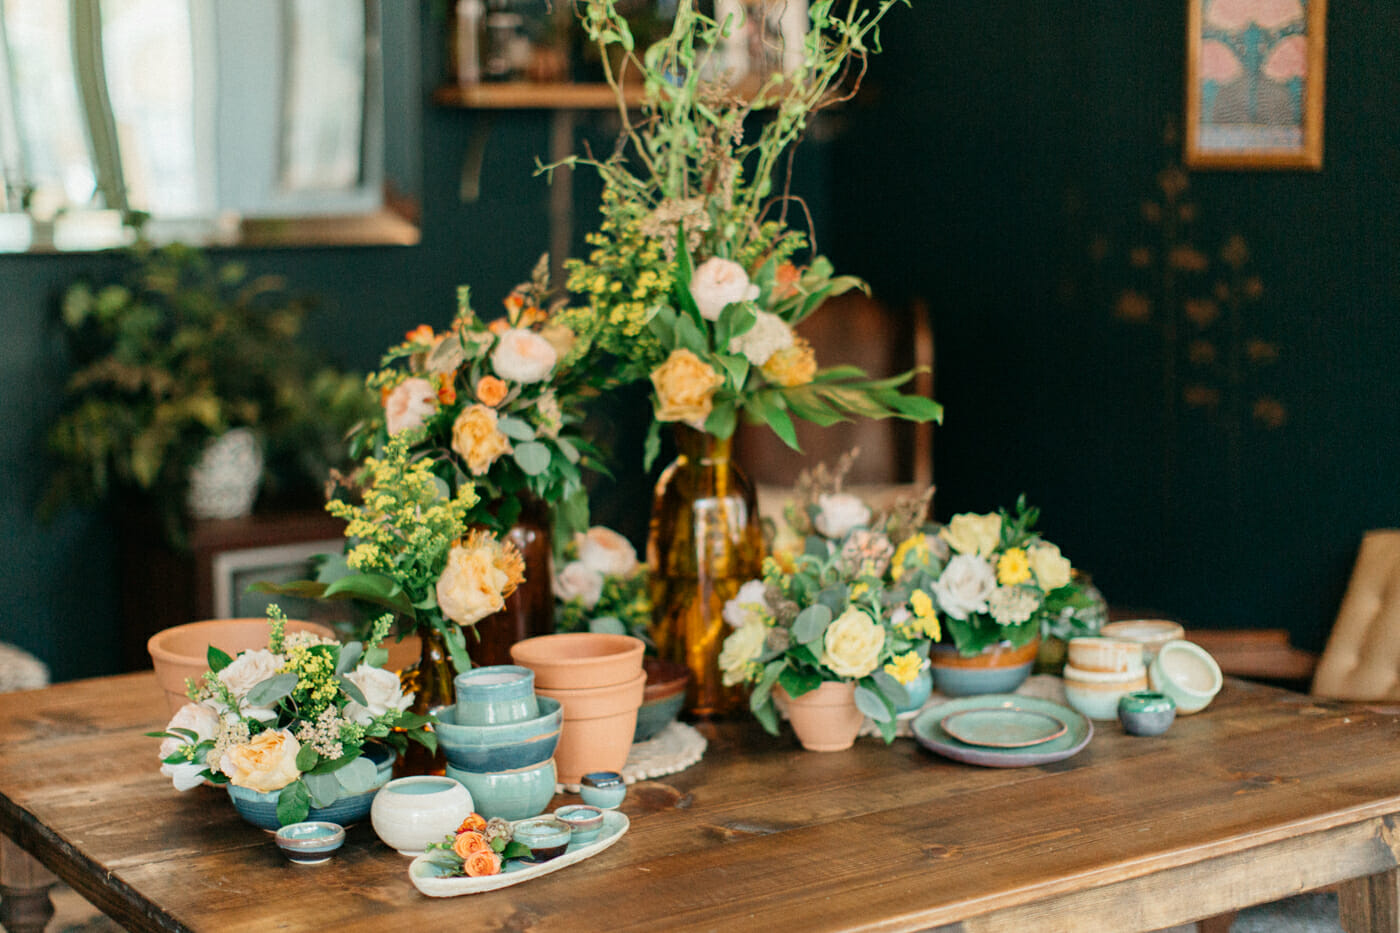 Eclectic decor including handmade pottery, amber vases, and pastel floral.